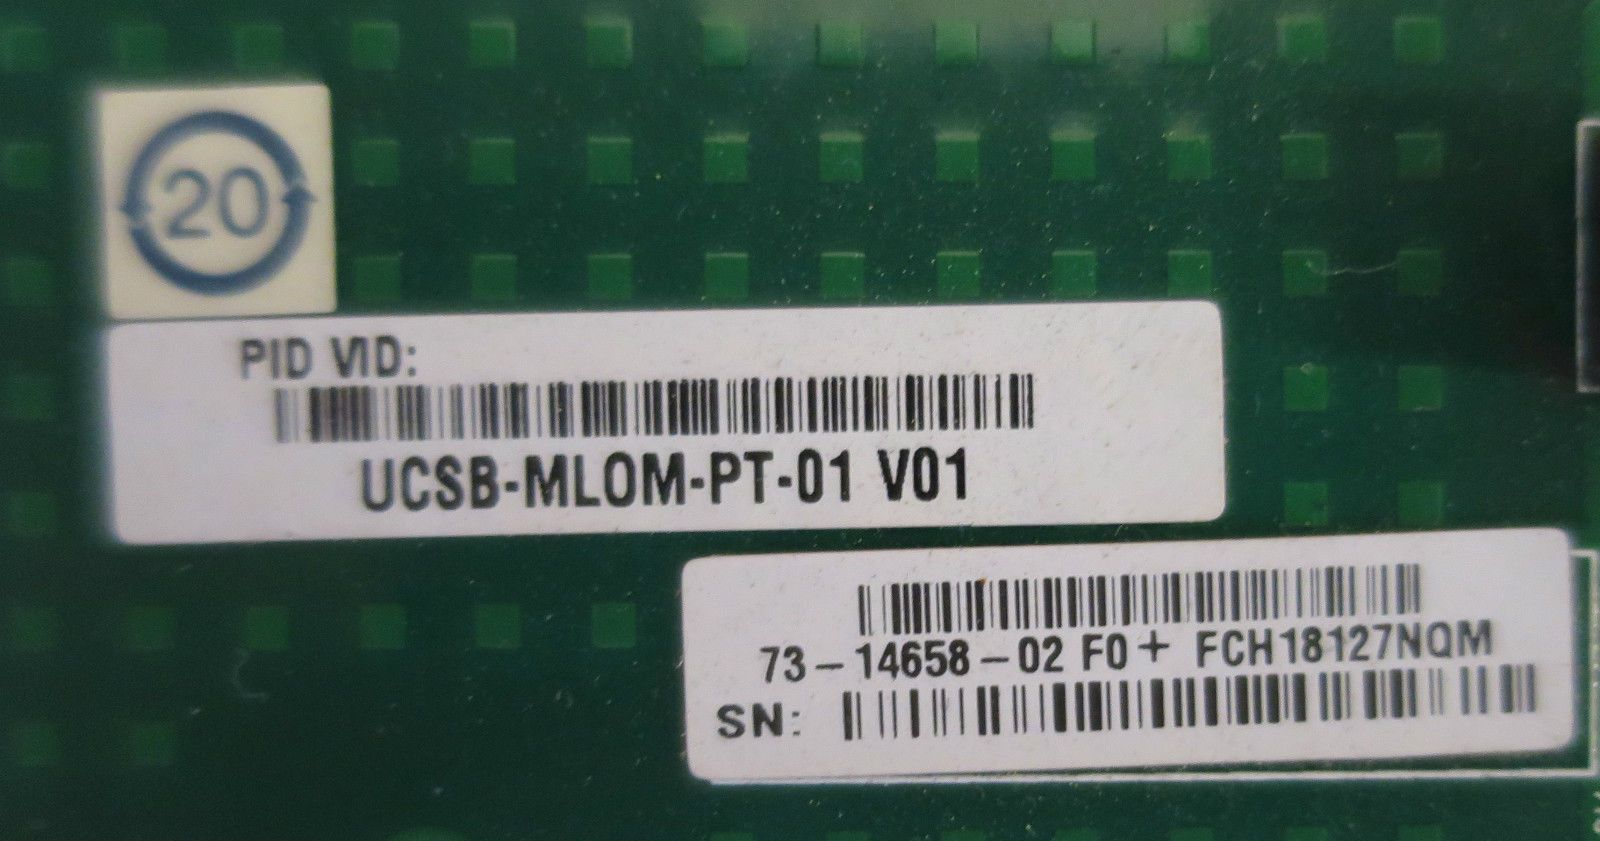 Cisco UCSB-MLOM-PT-01 UCS VIC 1240 4 Port 10Gb Interface Card M3 Blade  Servers